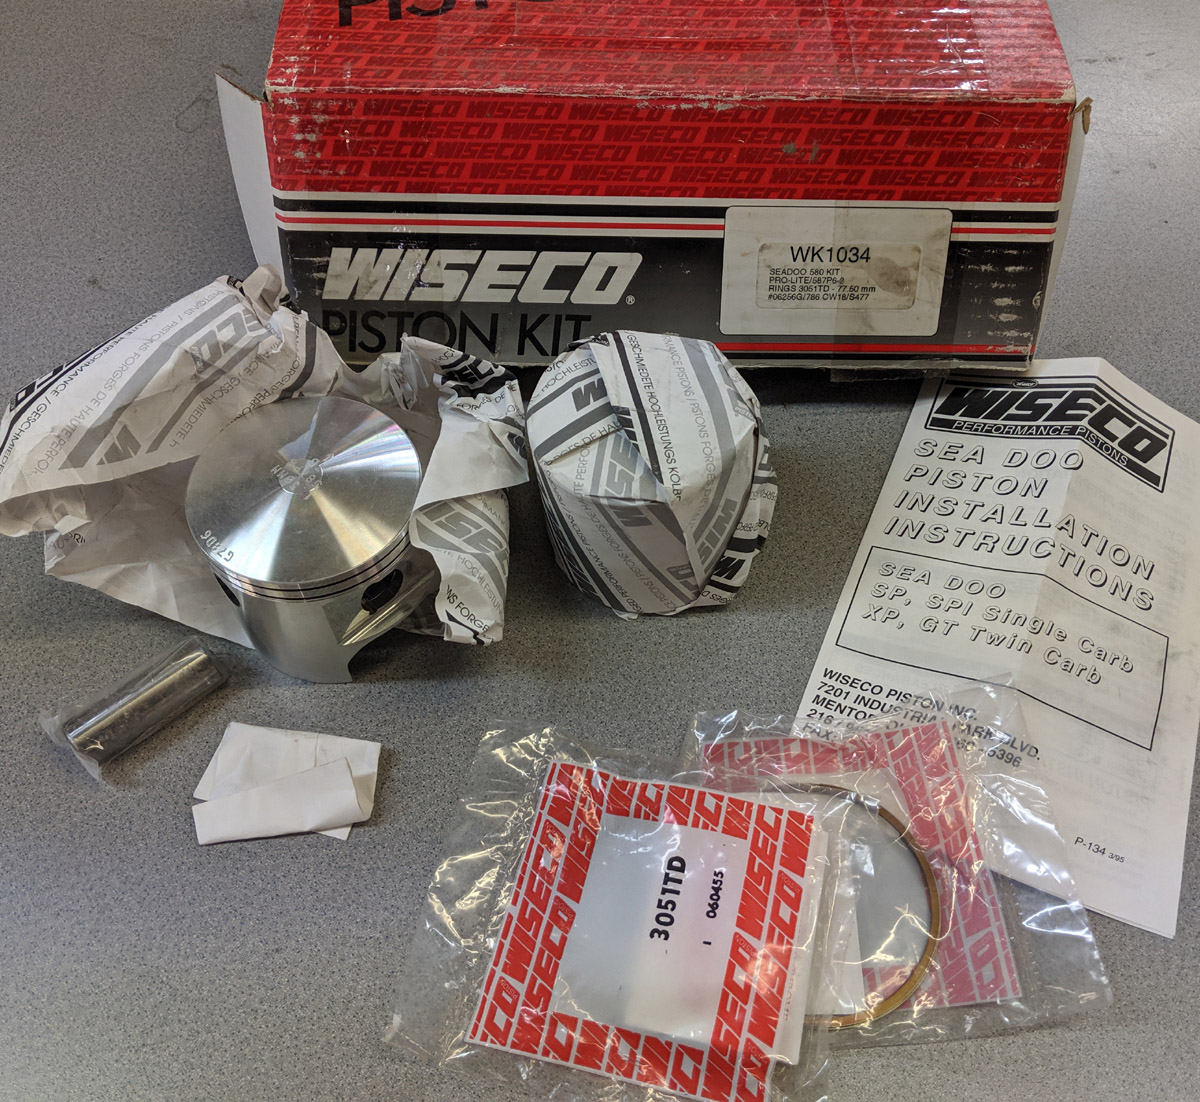 NOS WISECO 580 587 TOP END PISTON KIT (77.5mm)